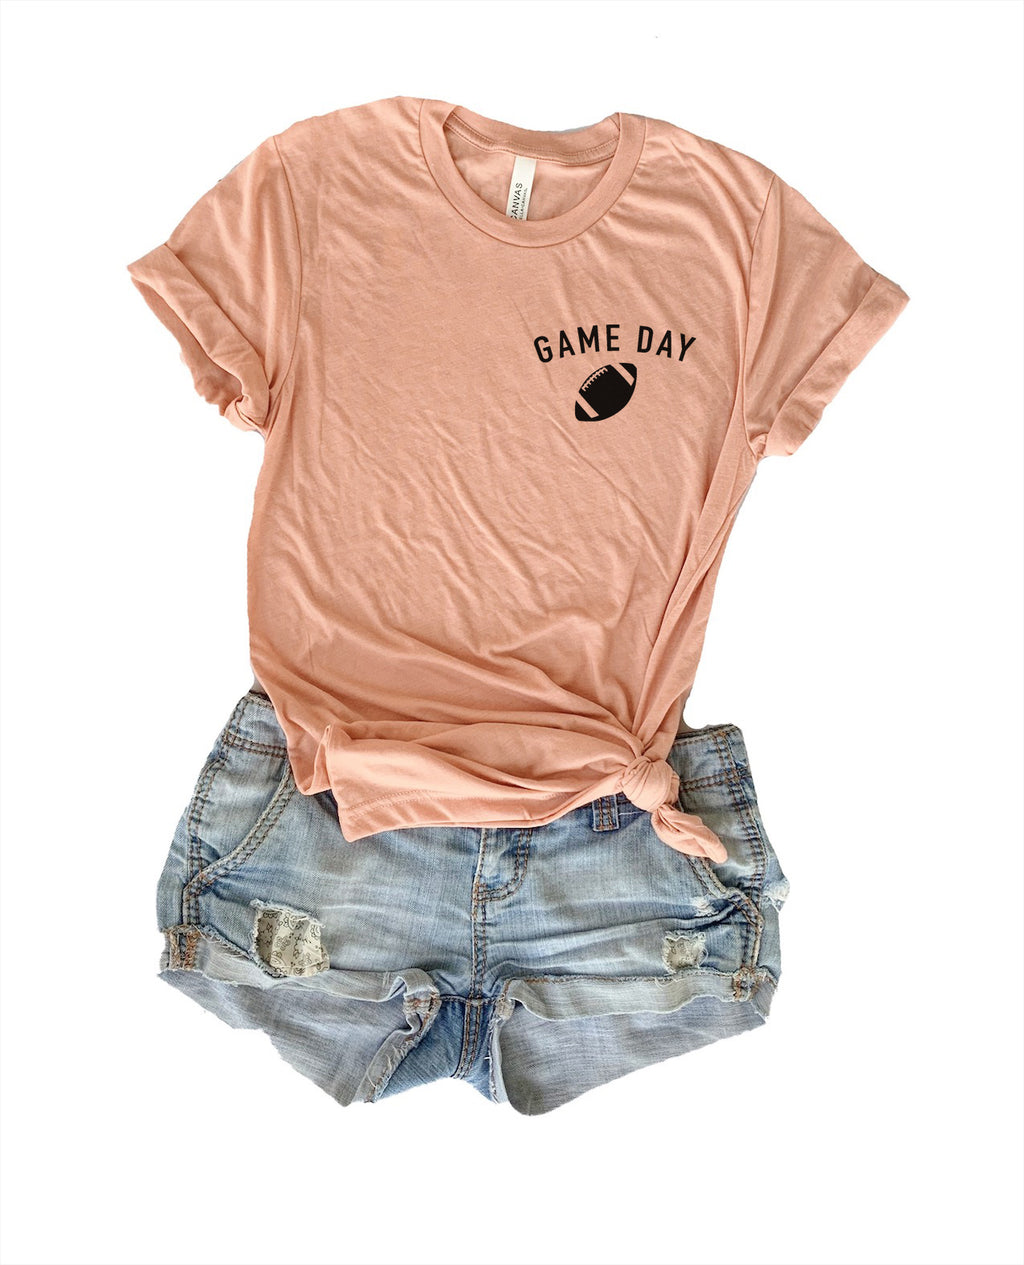 Wear this tee and let people know that you're ready for Game Day! Whether you're going to wear this cute football tee while you go tailgating or wear it to the nearest pub, this football tee is a great addition for your Sunday Football!